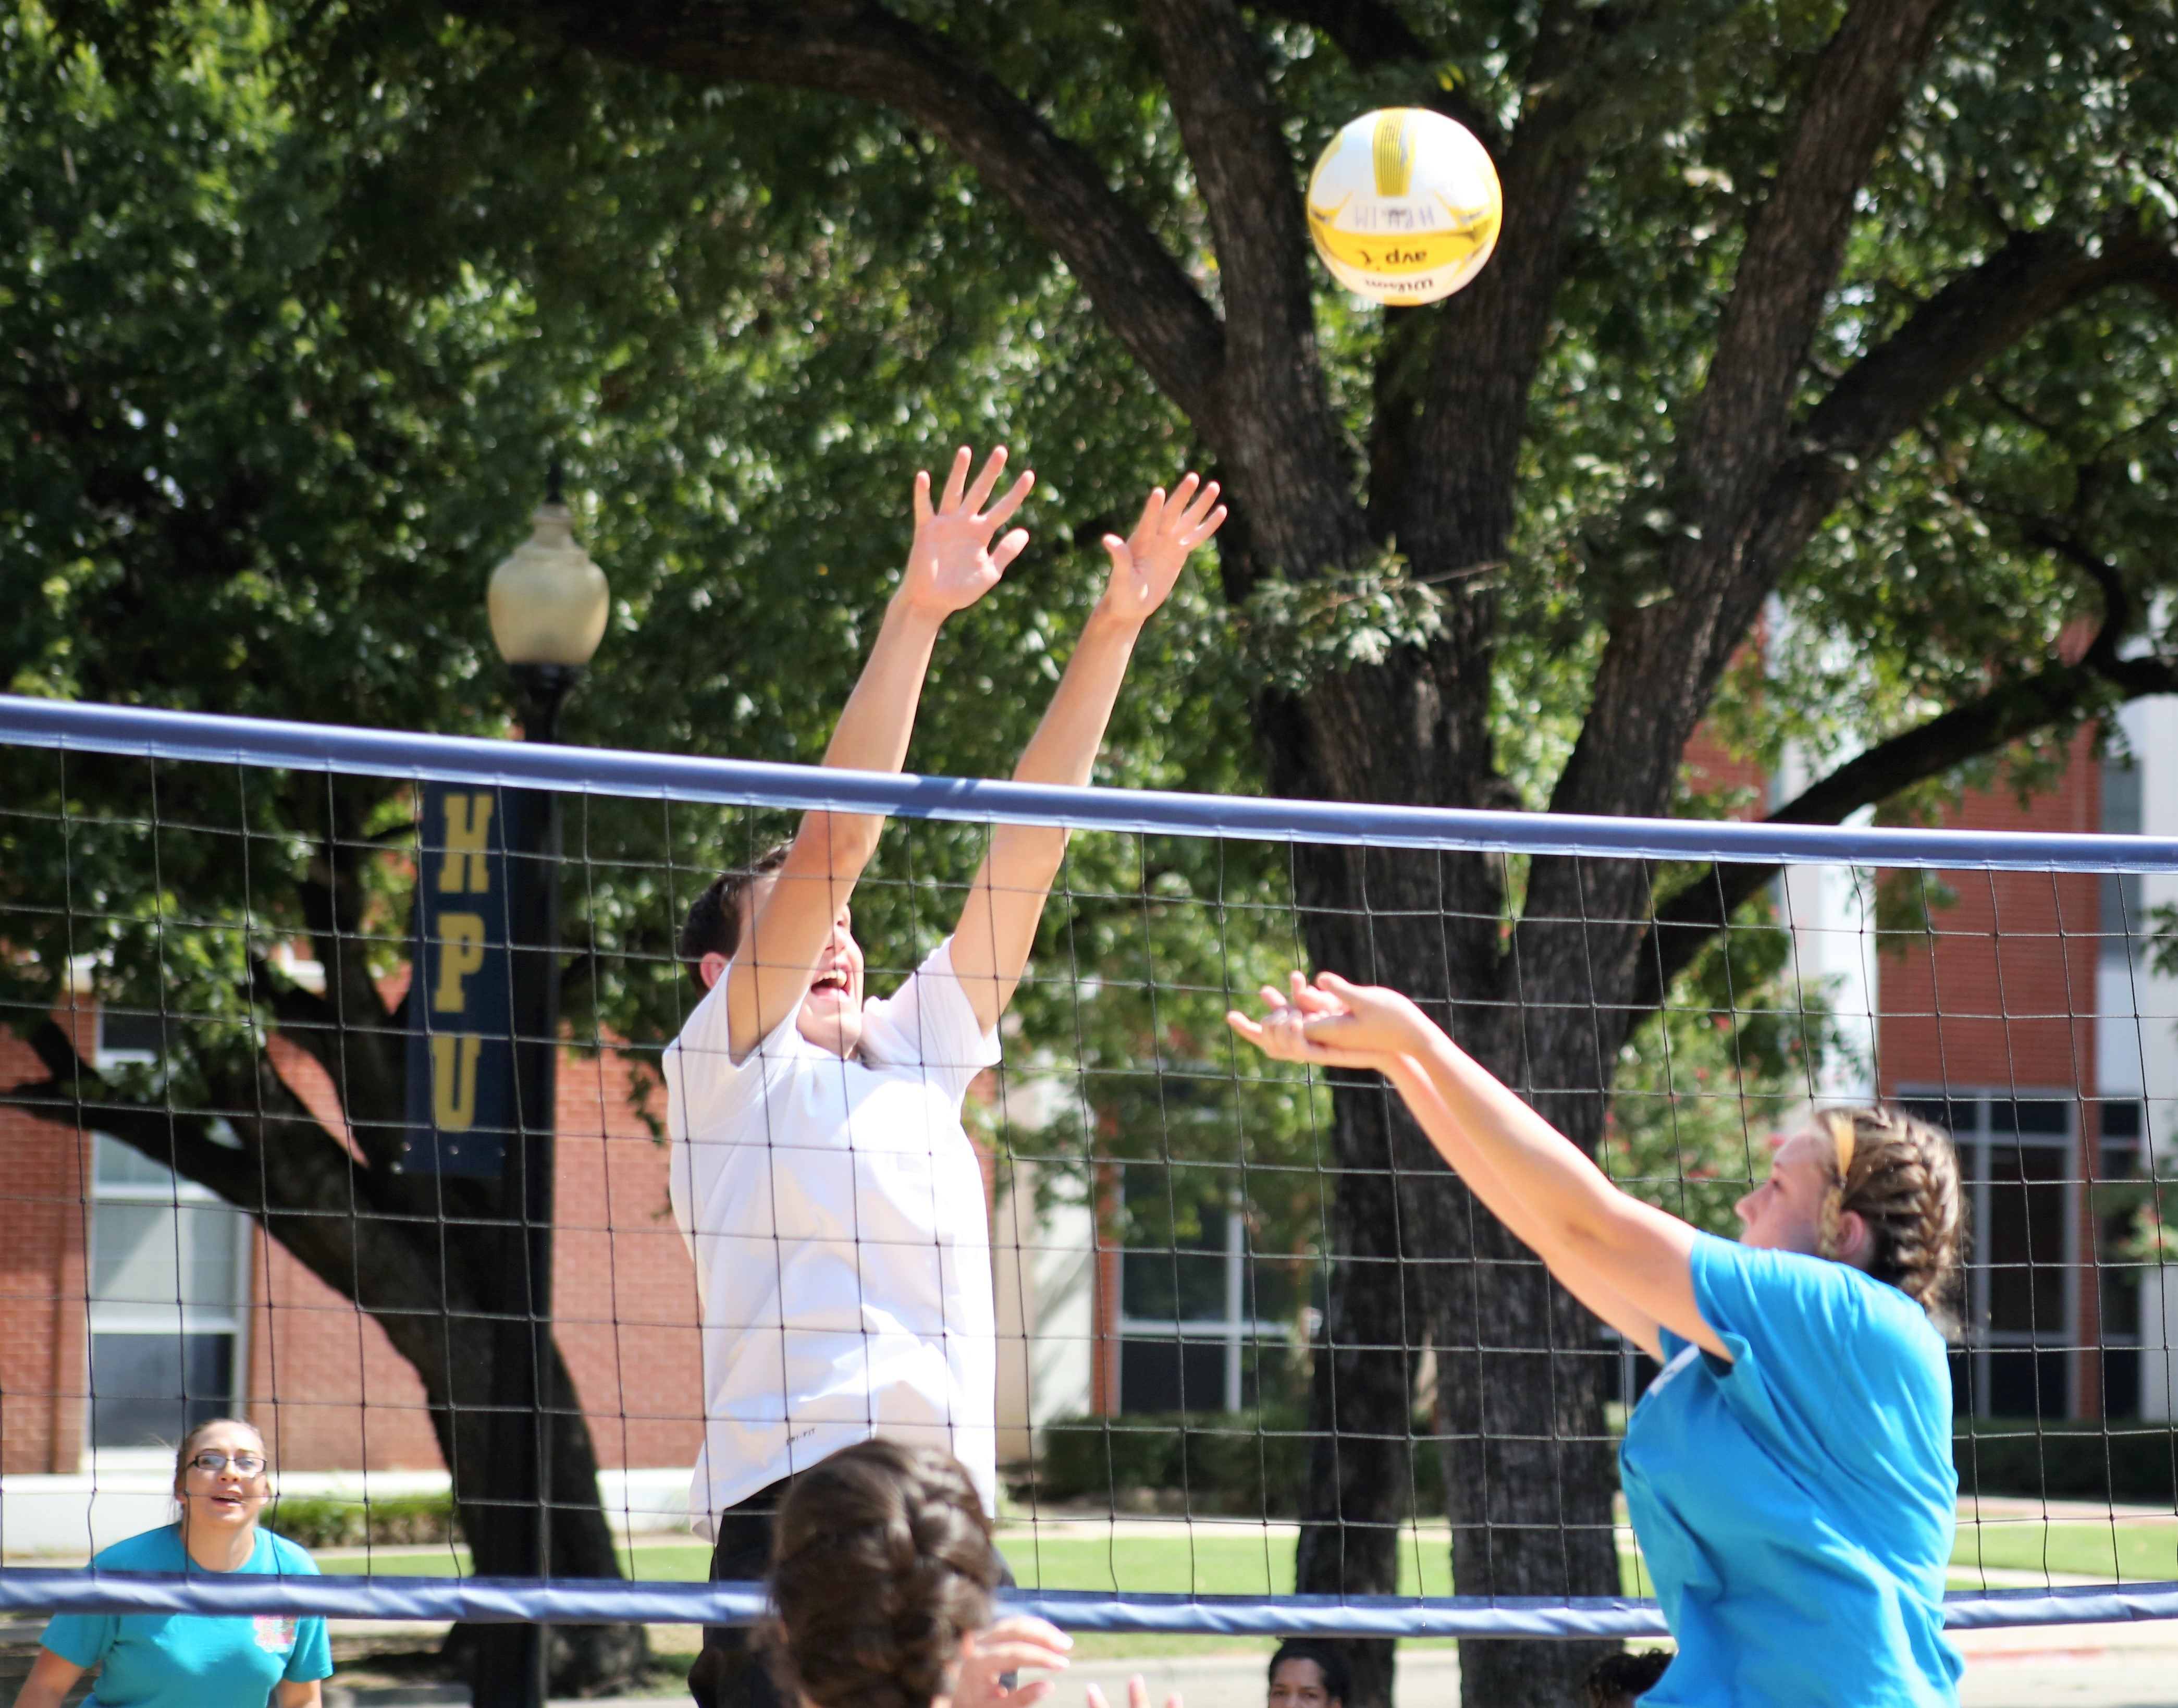 Photo 1 - Sand volleyball game